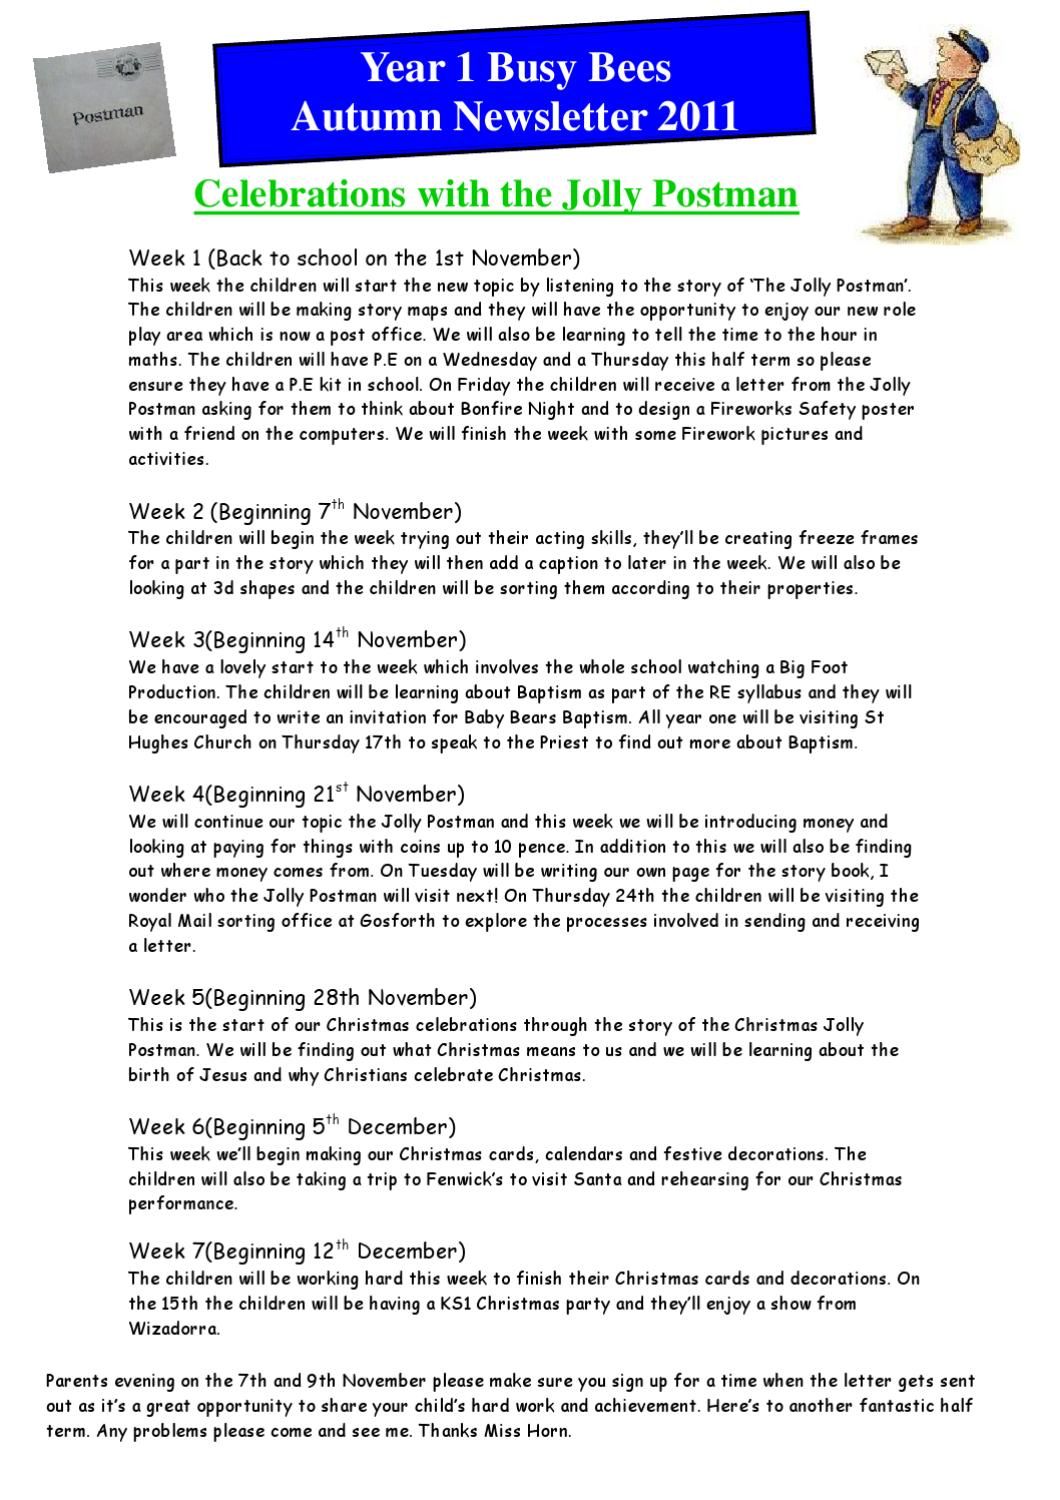 Regent farm first school year 1 busy bees autumn 2 newsletter by regent farm first school year 1 busy bees autumn 2 newsletter by regent farm issuu aljukfo Gallery